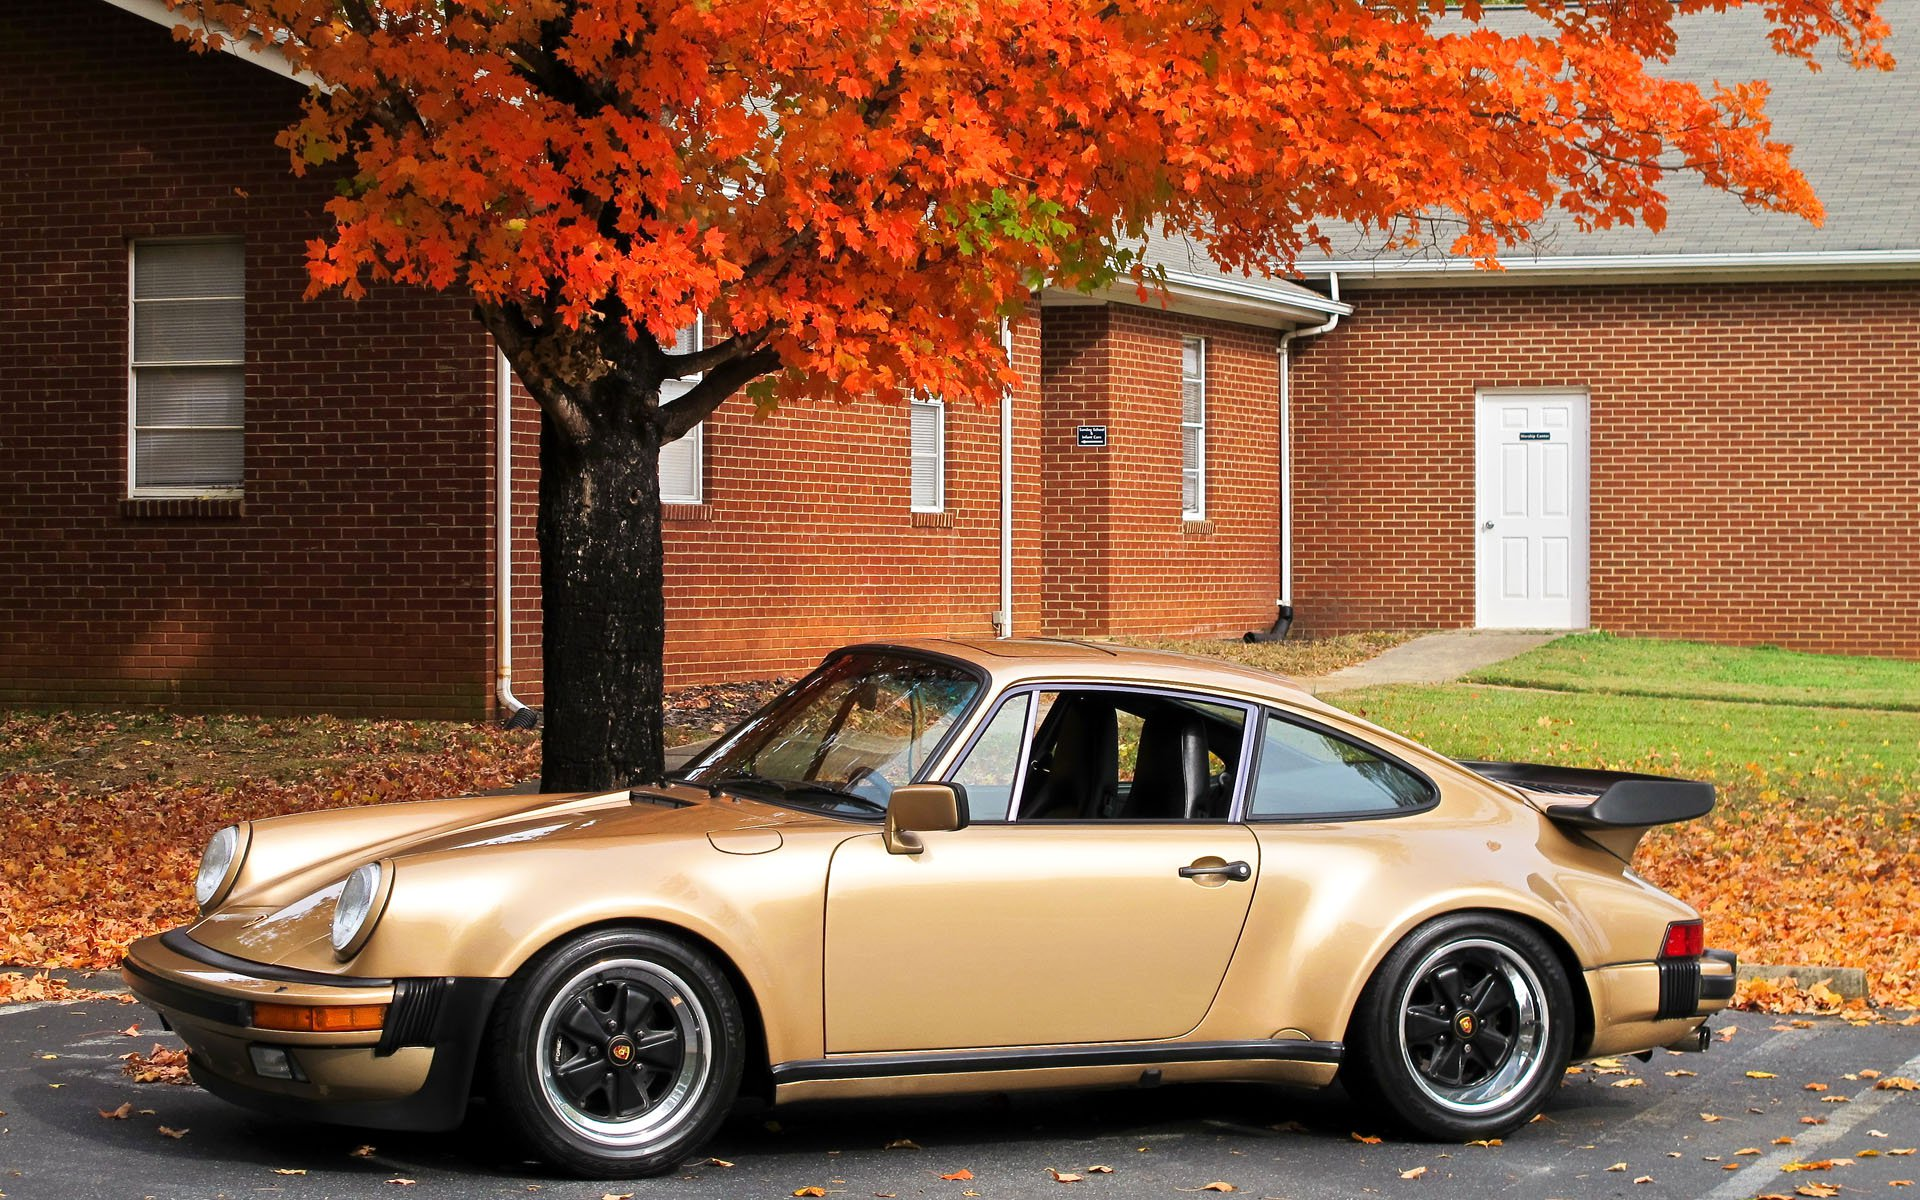 Porsche_911_turbo_-_golden_autumn.jpg